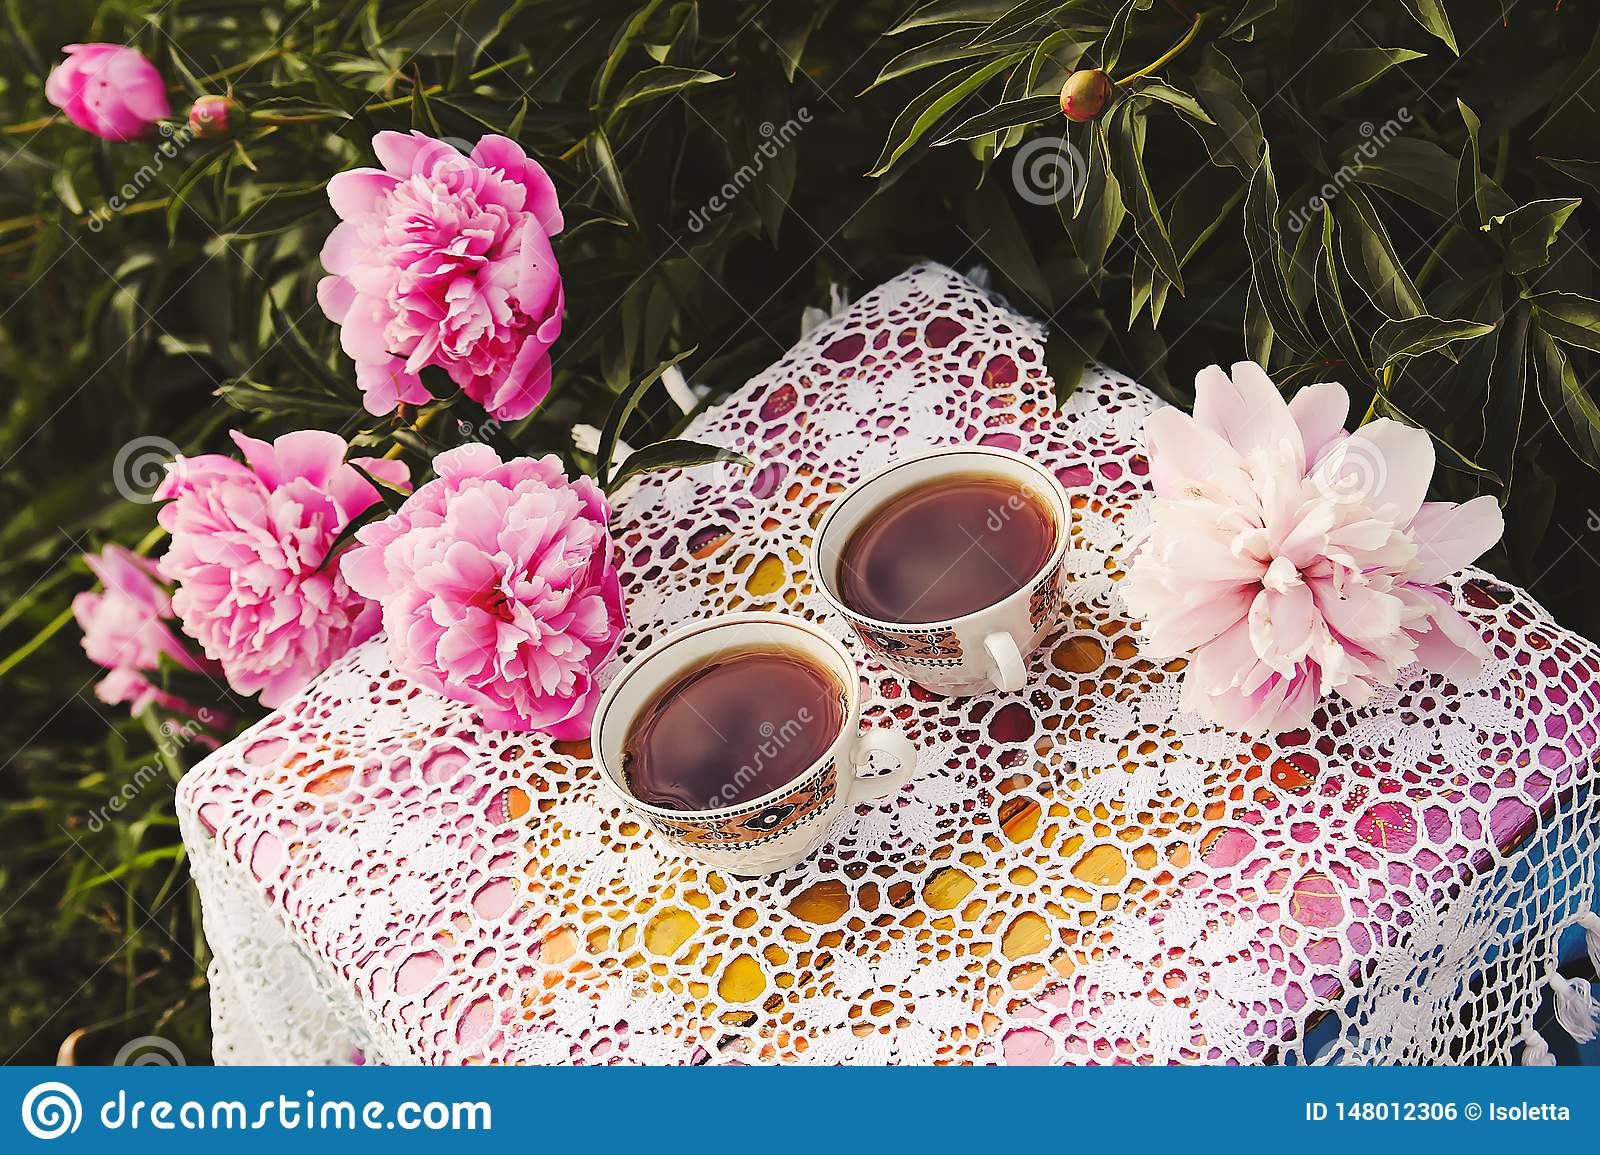 Tea in country style in summer garden. Two cups of black tea on handmade crocheted vintage lacy tablecloth and blooming peony